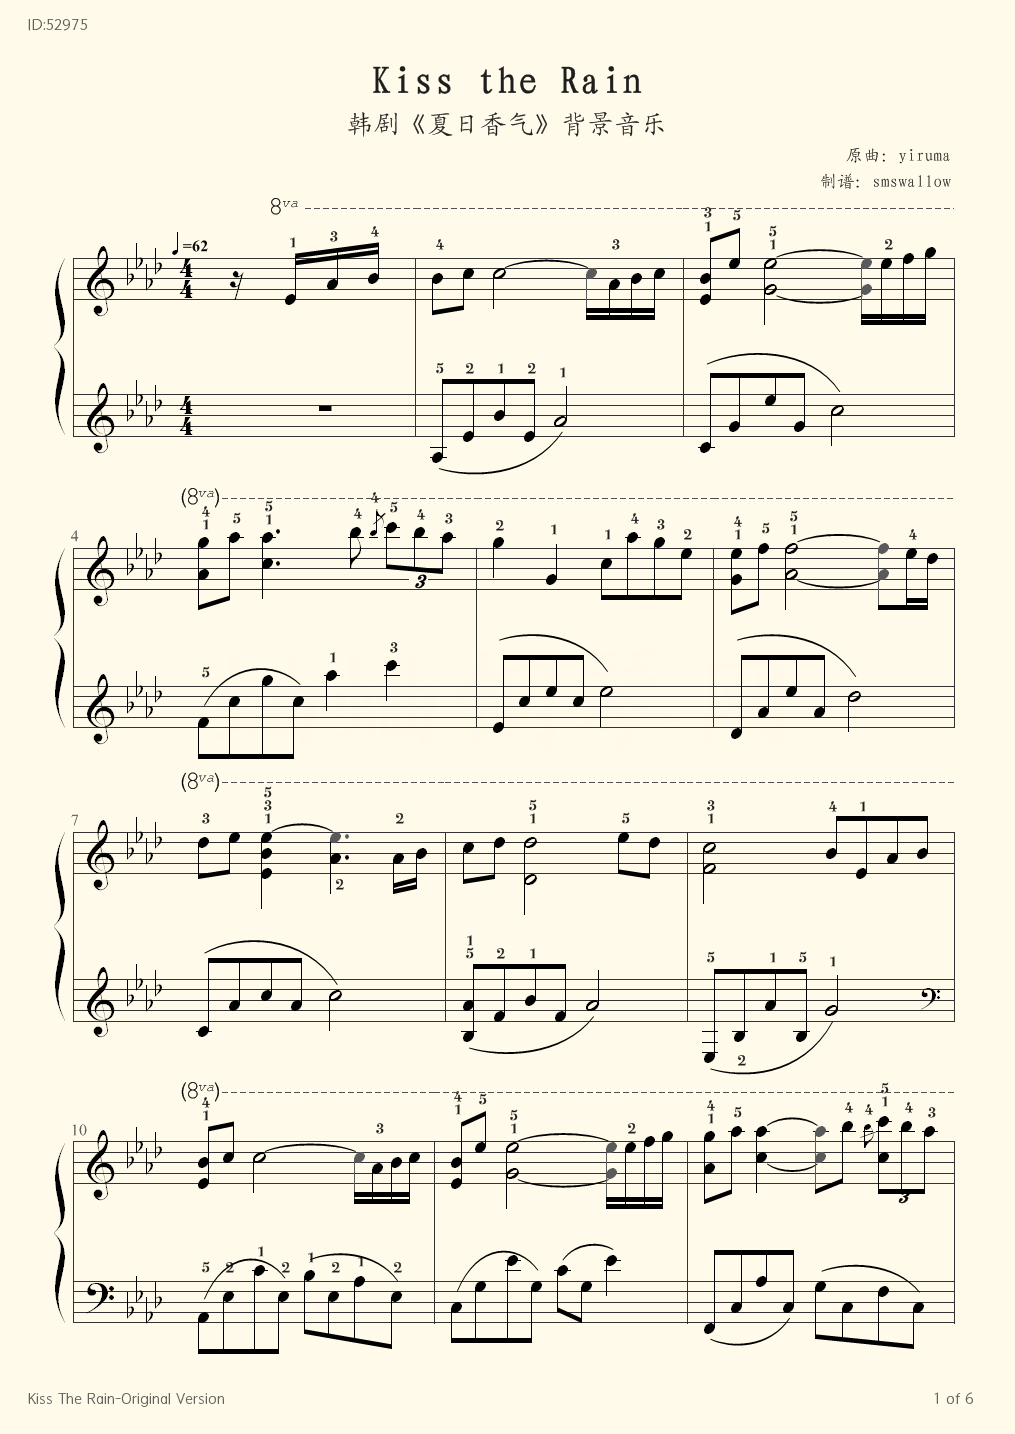 Kiss The Rain Original Version - Yiruma - first page